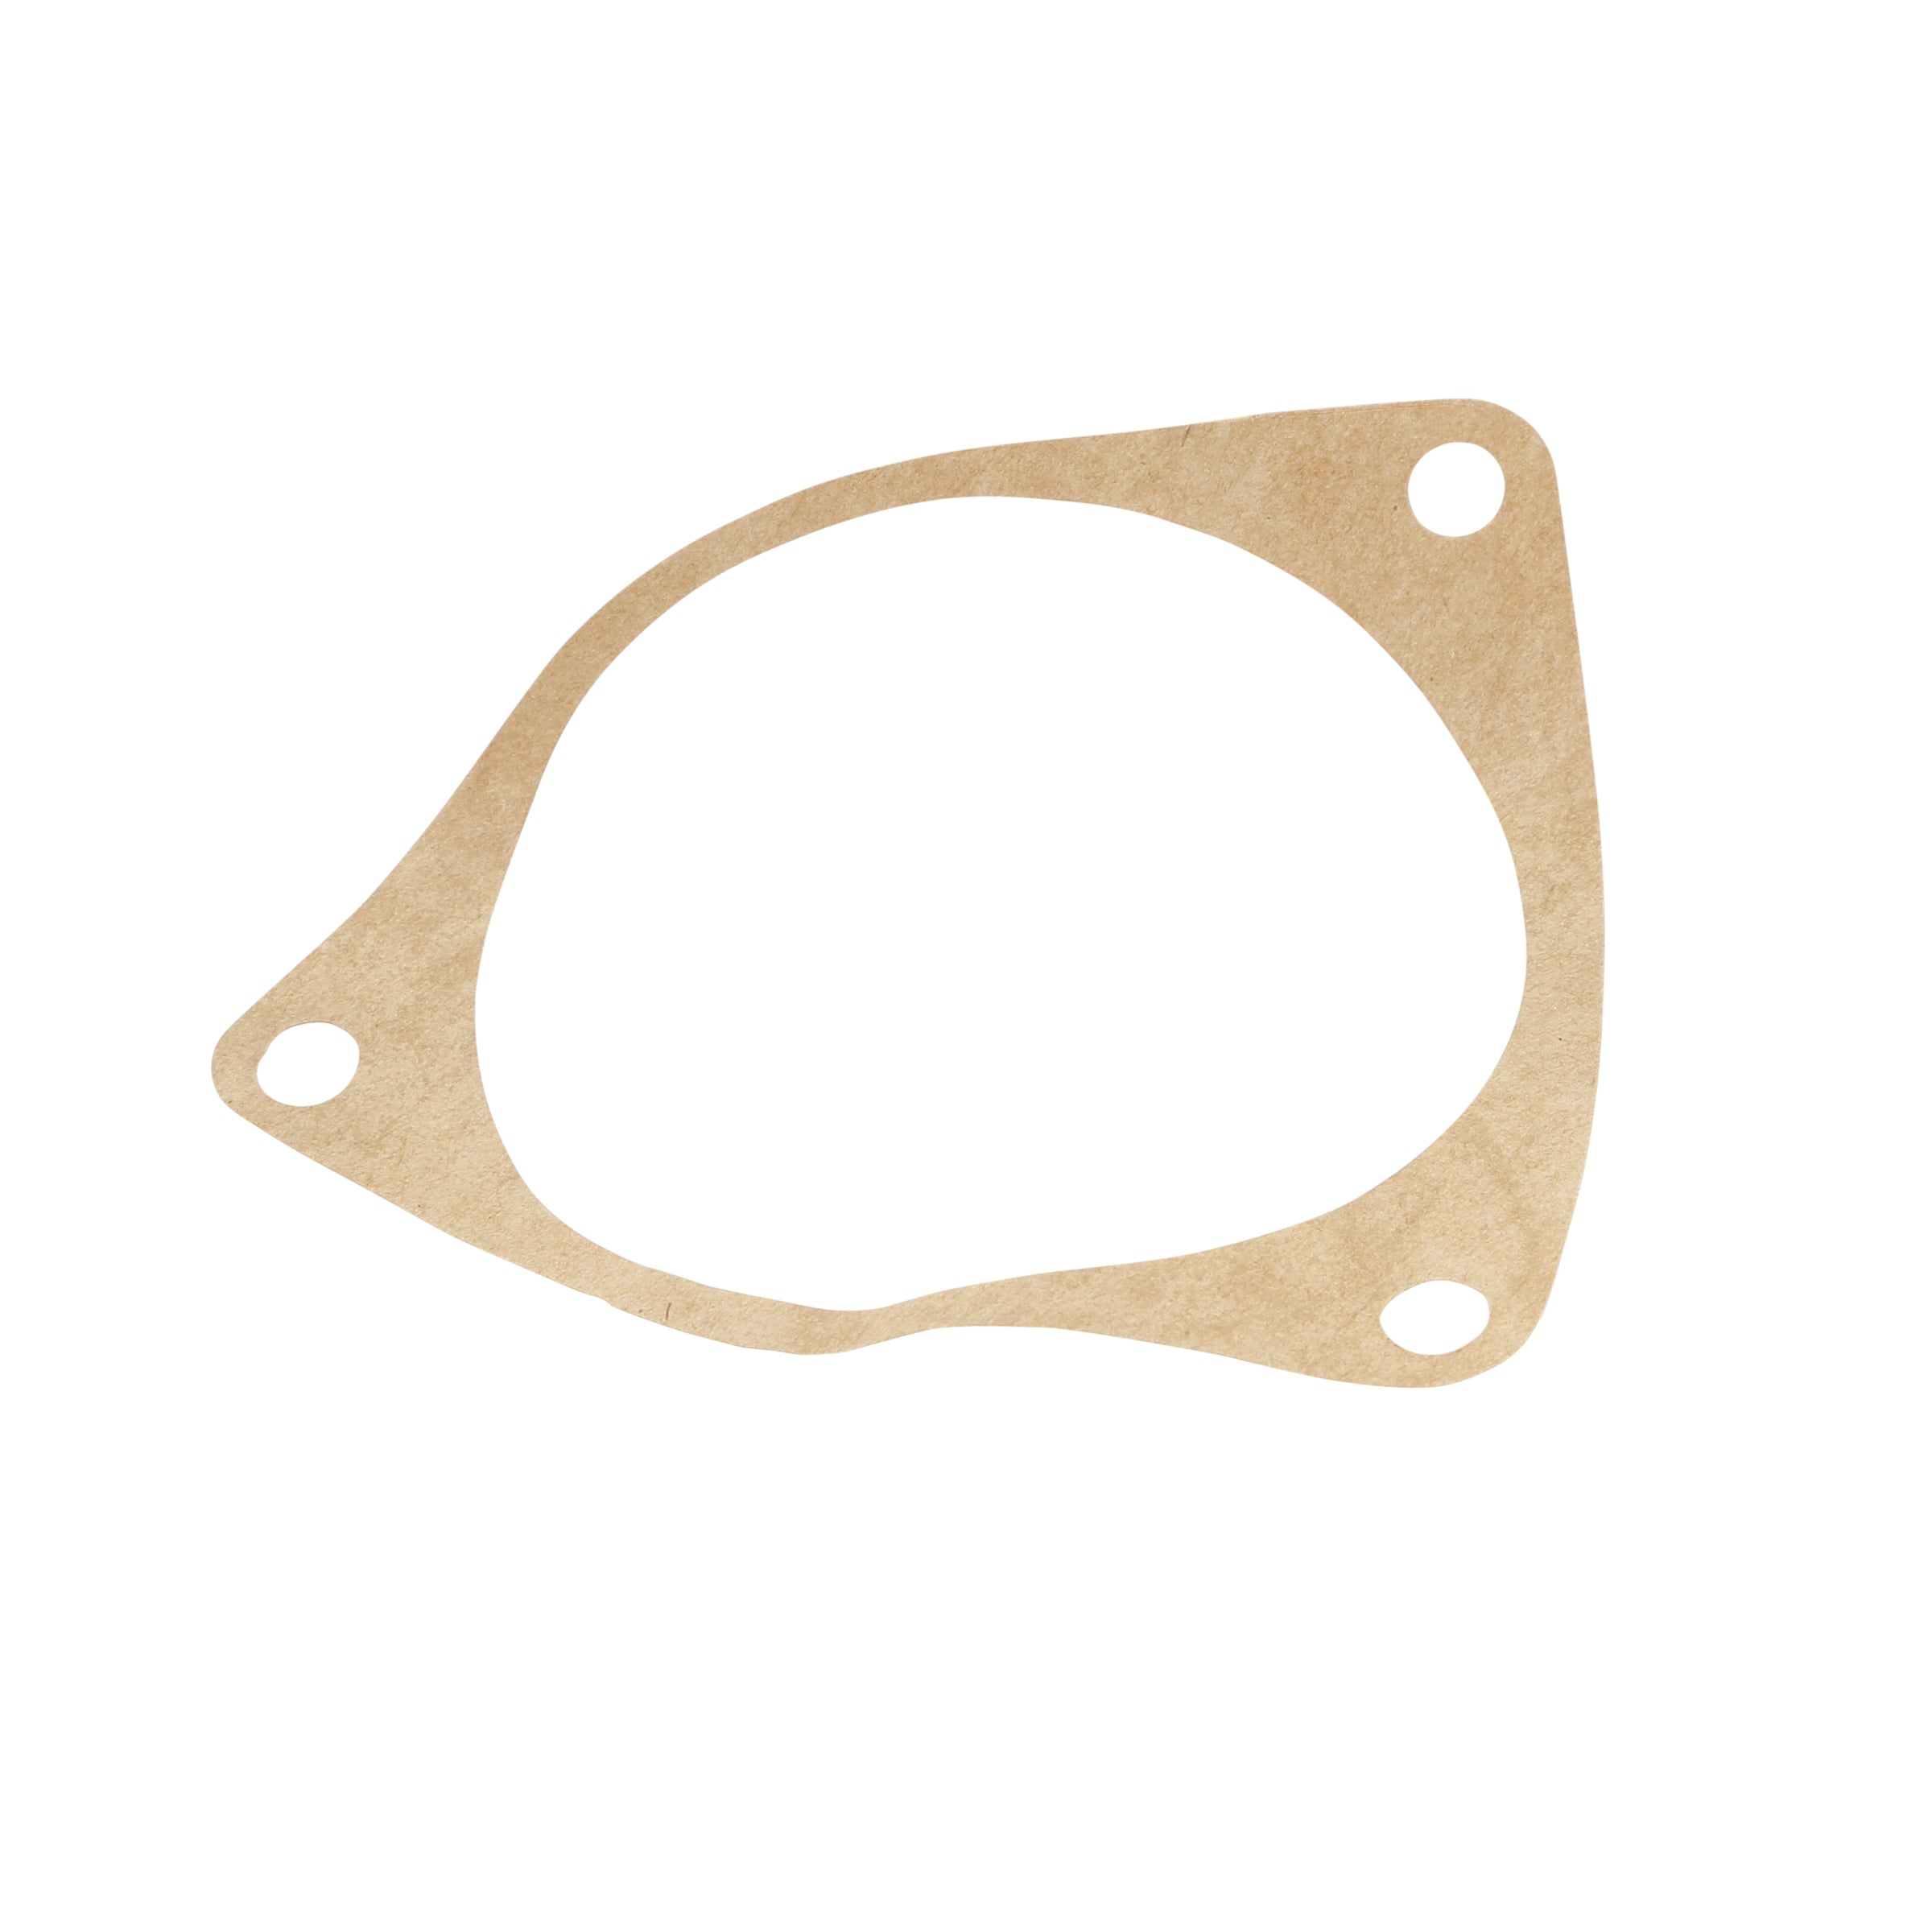 Starter Shim Gasket • 1928-31 Model A Ford